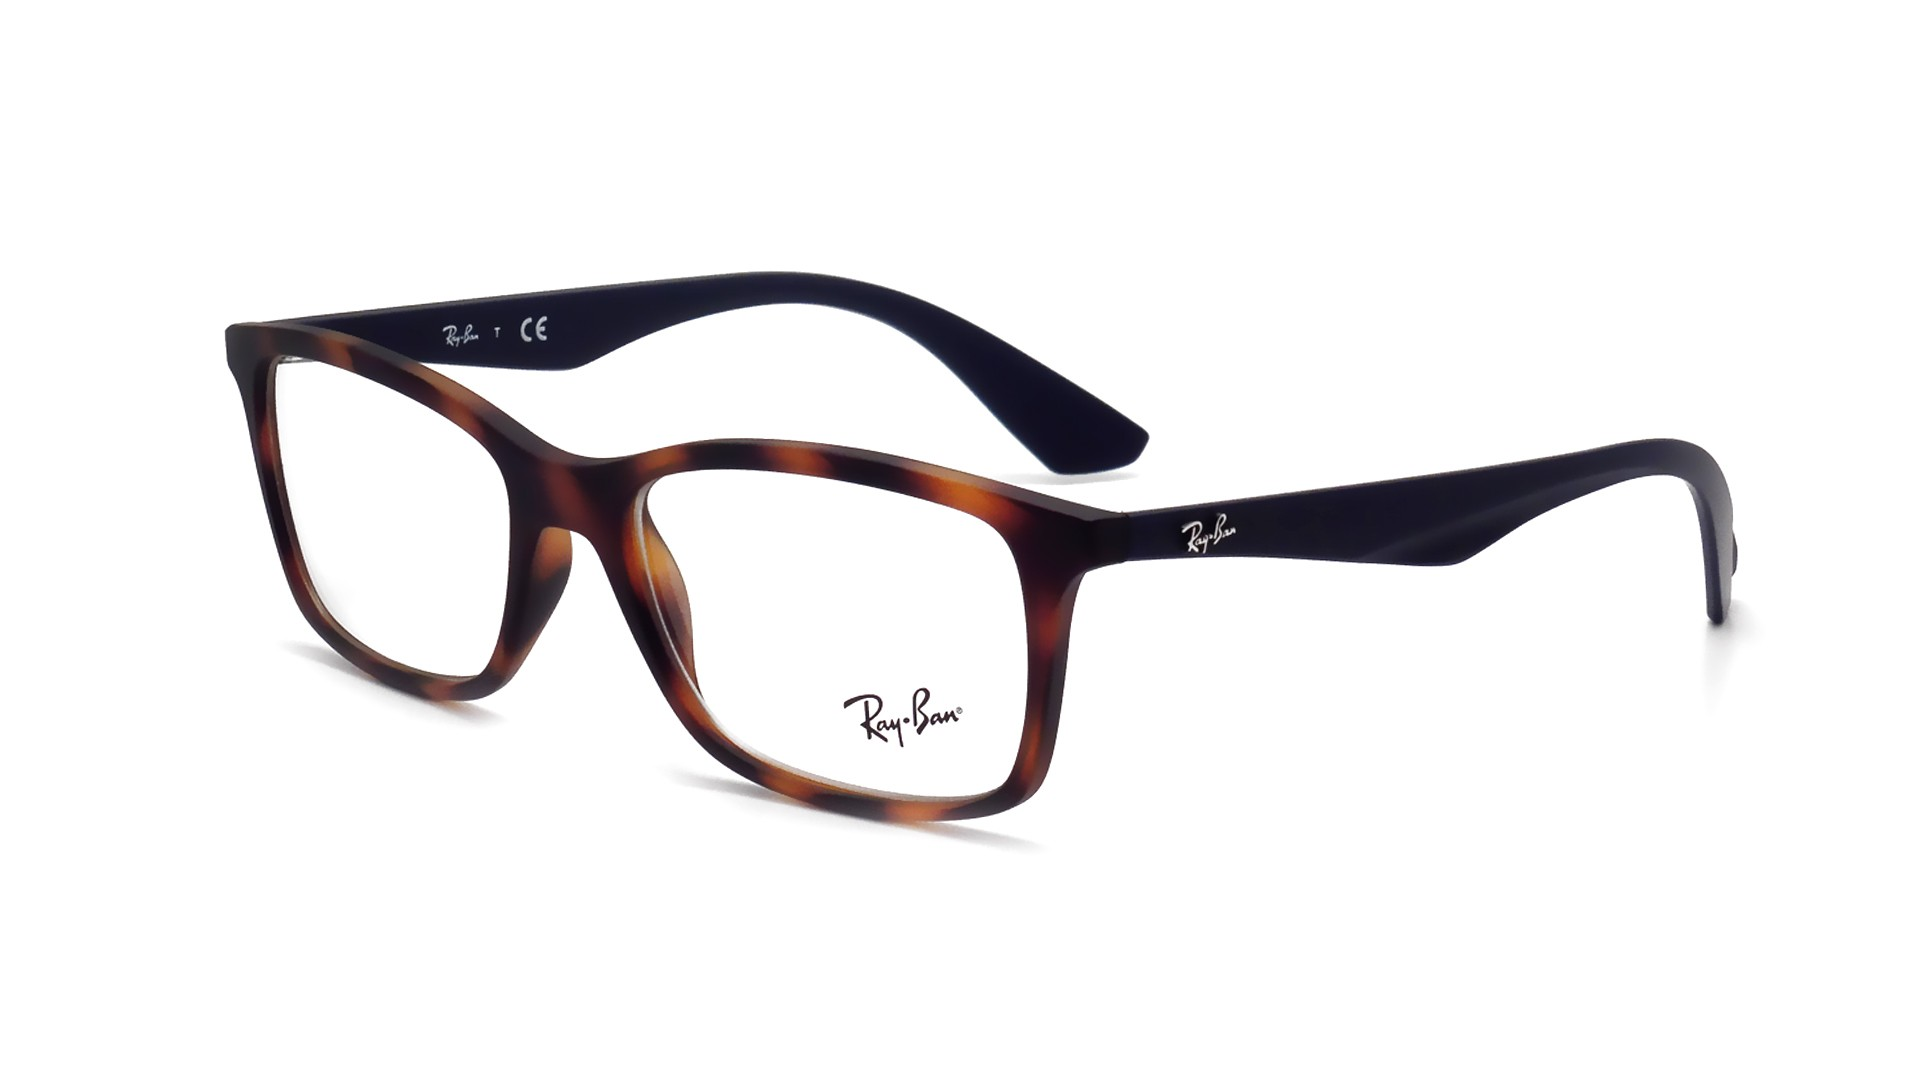 dd9276884ef ireland lunettes de vue ray ban active lifestyle tortoise rx7047 rb7047  5574 54 17 visiofactory 157fd